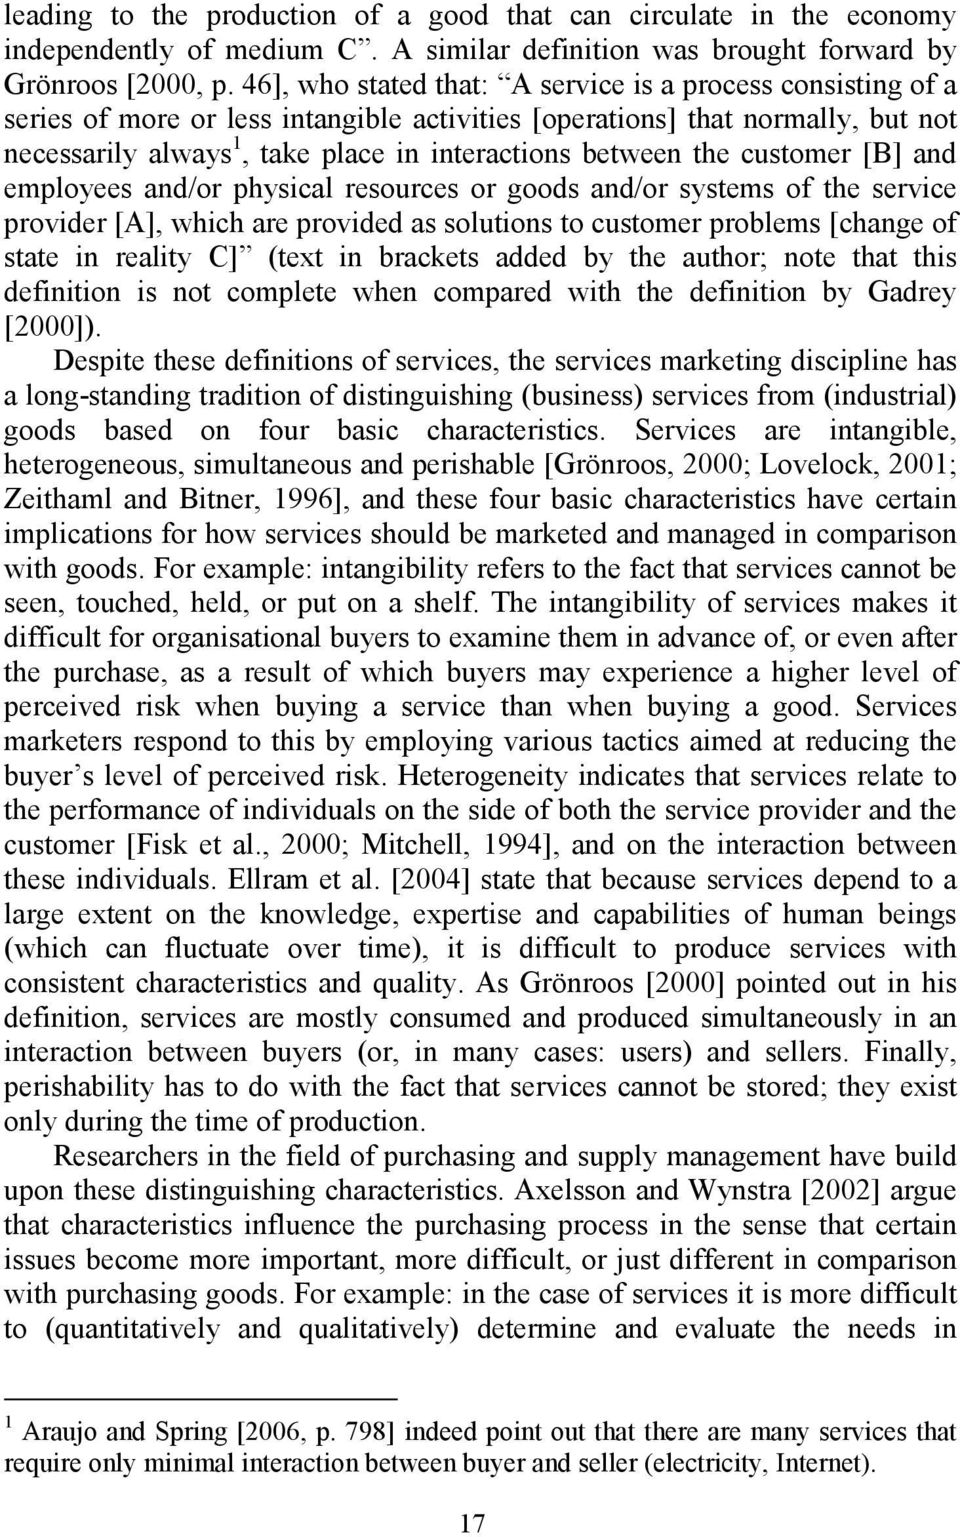 the customer [B] and employees and/or physical resources or goods and/or systems of the service provider [A], which are provided as solutions to customer problems [change of state in reality C] (text